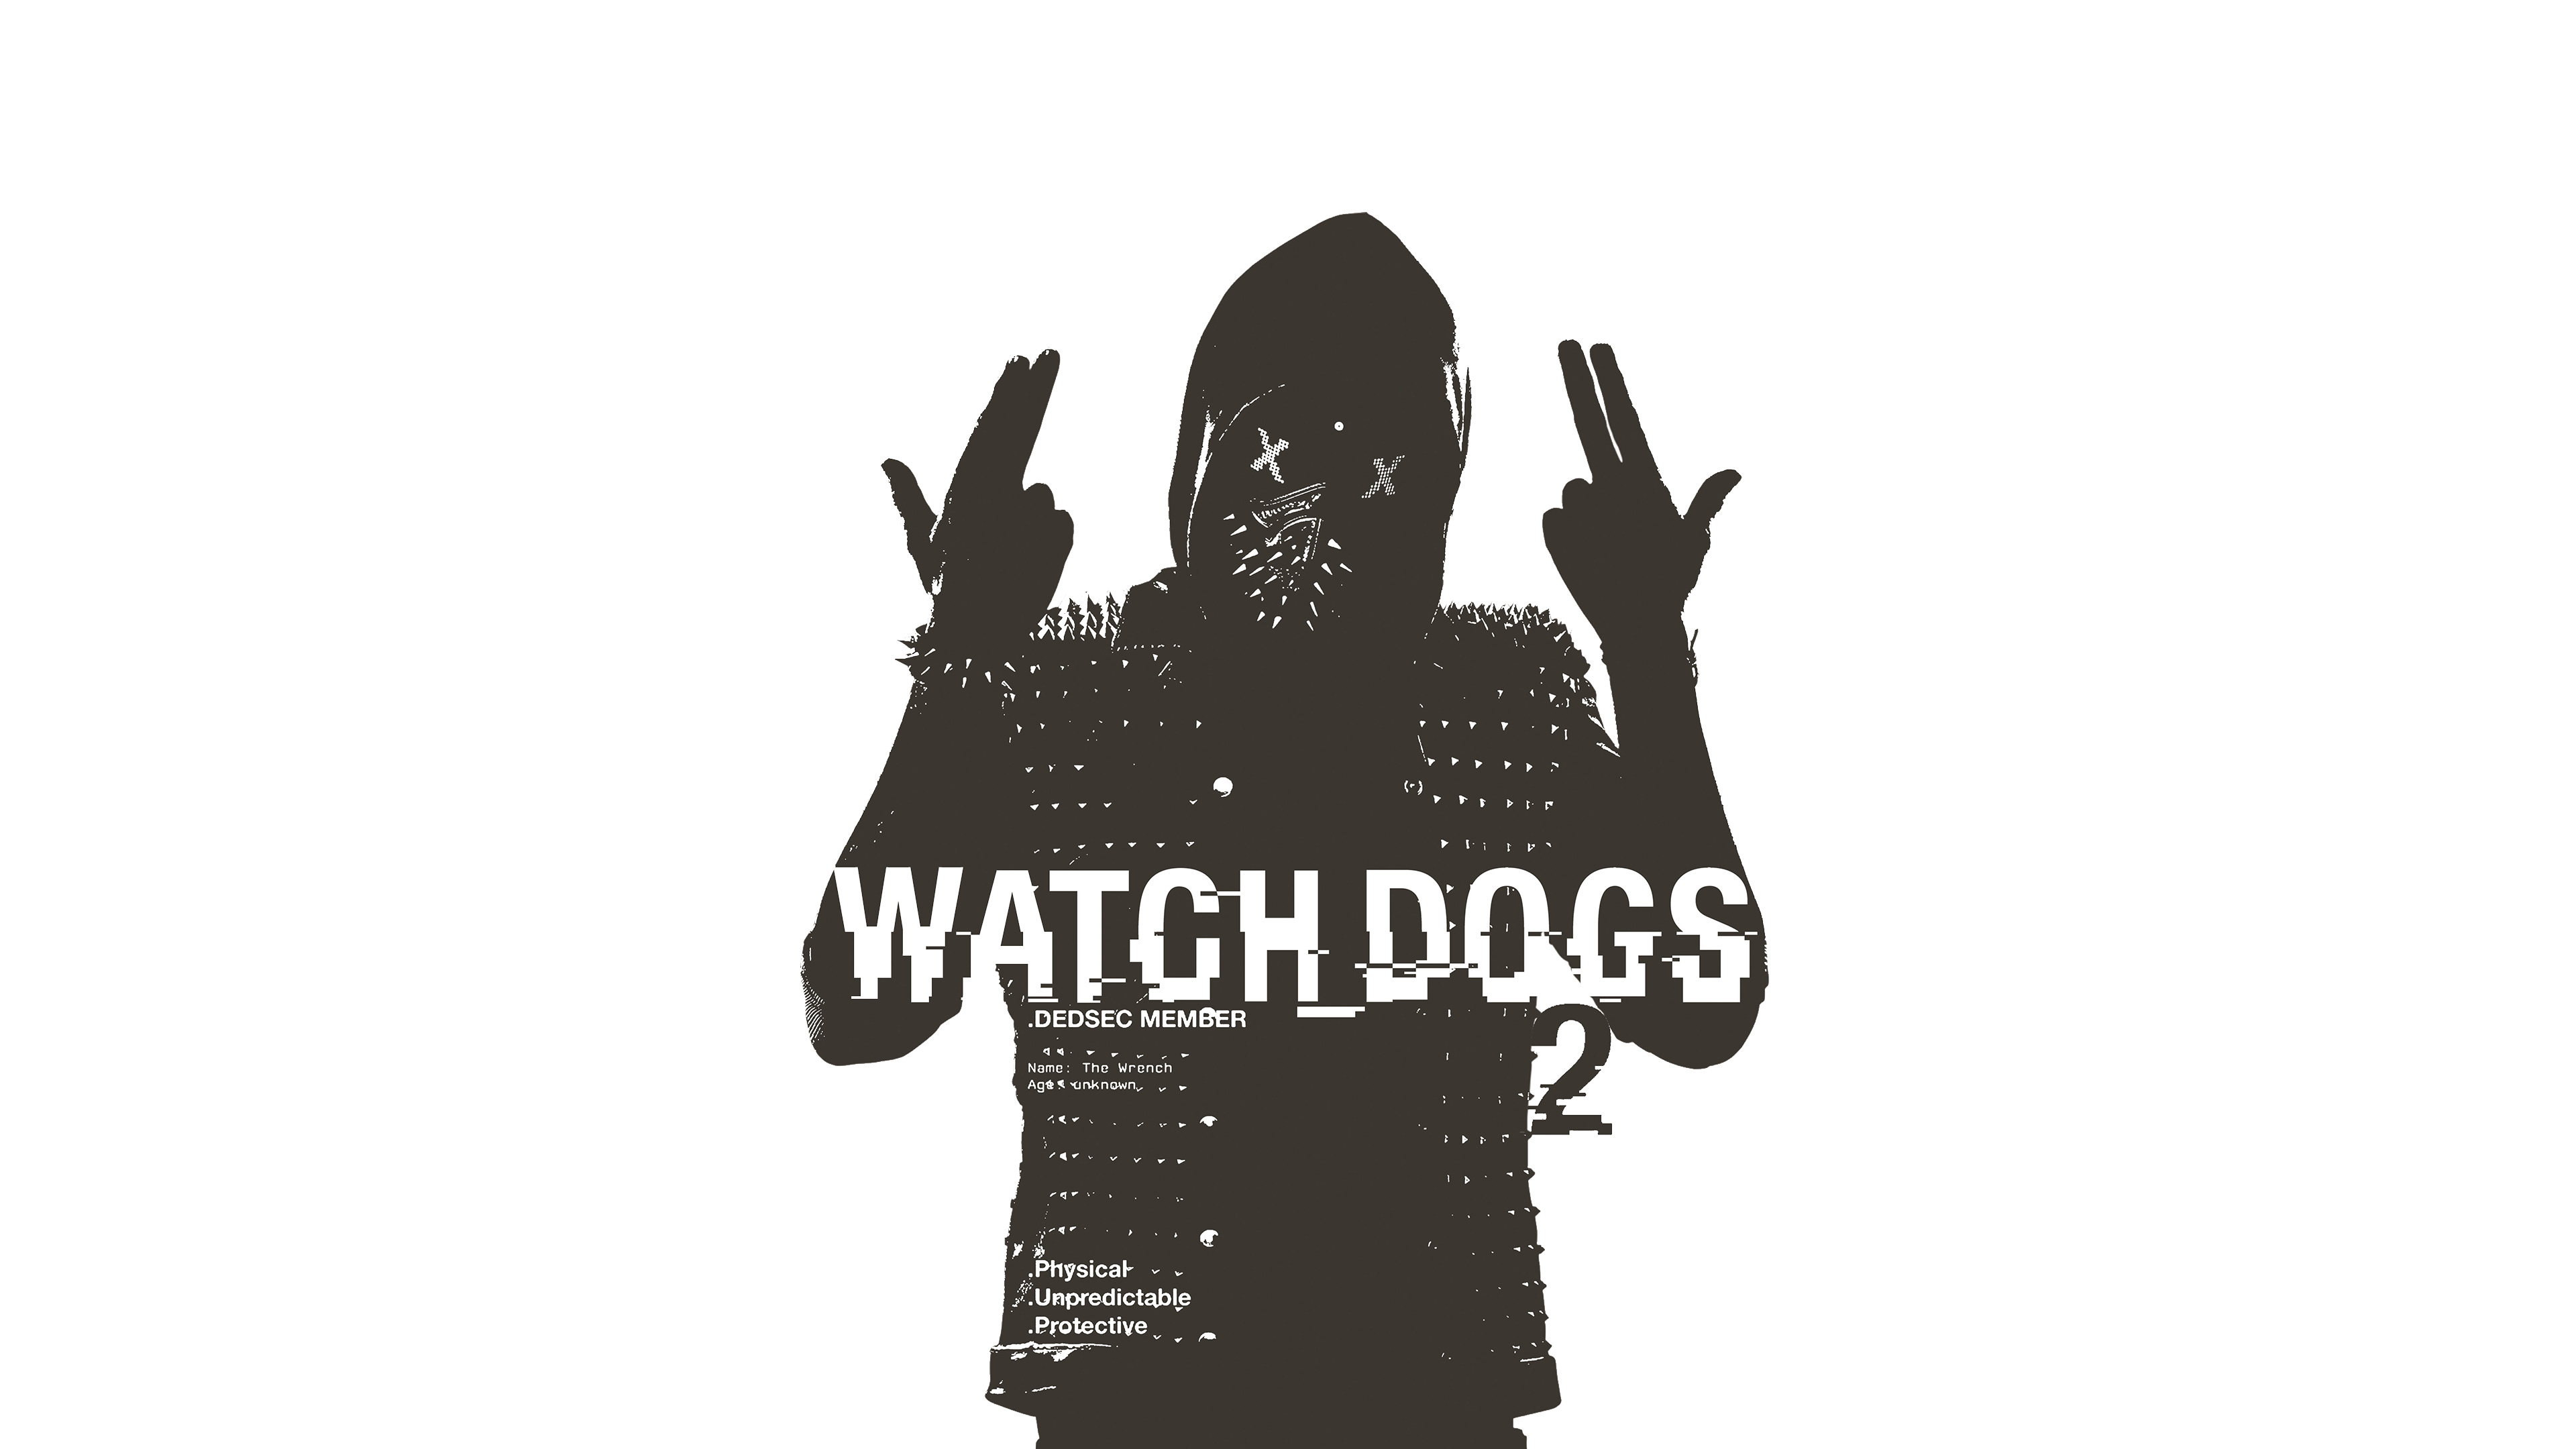 Watch Dogs High Resolution Games Hd Wallpaper For Mobile: Watch Dogs 2 Wrench Poster, HD Games, 4k Wallpapers